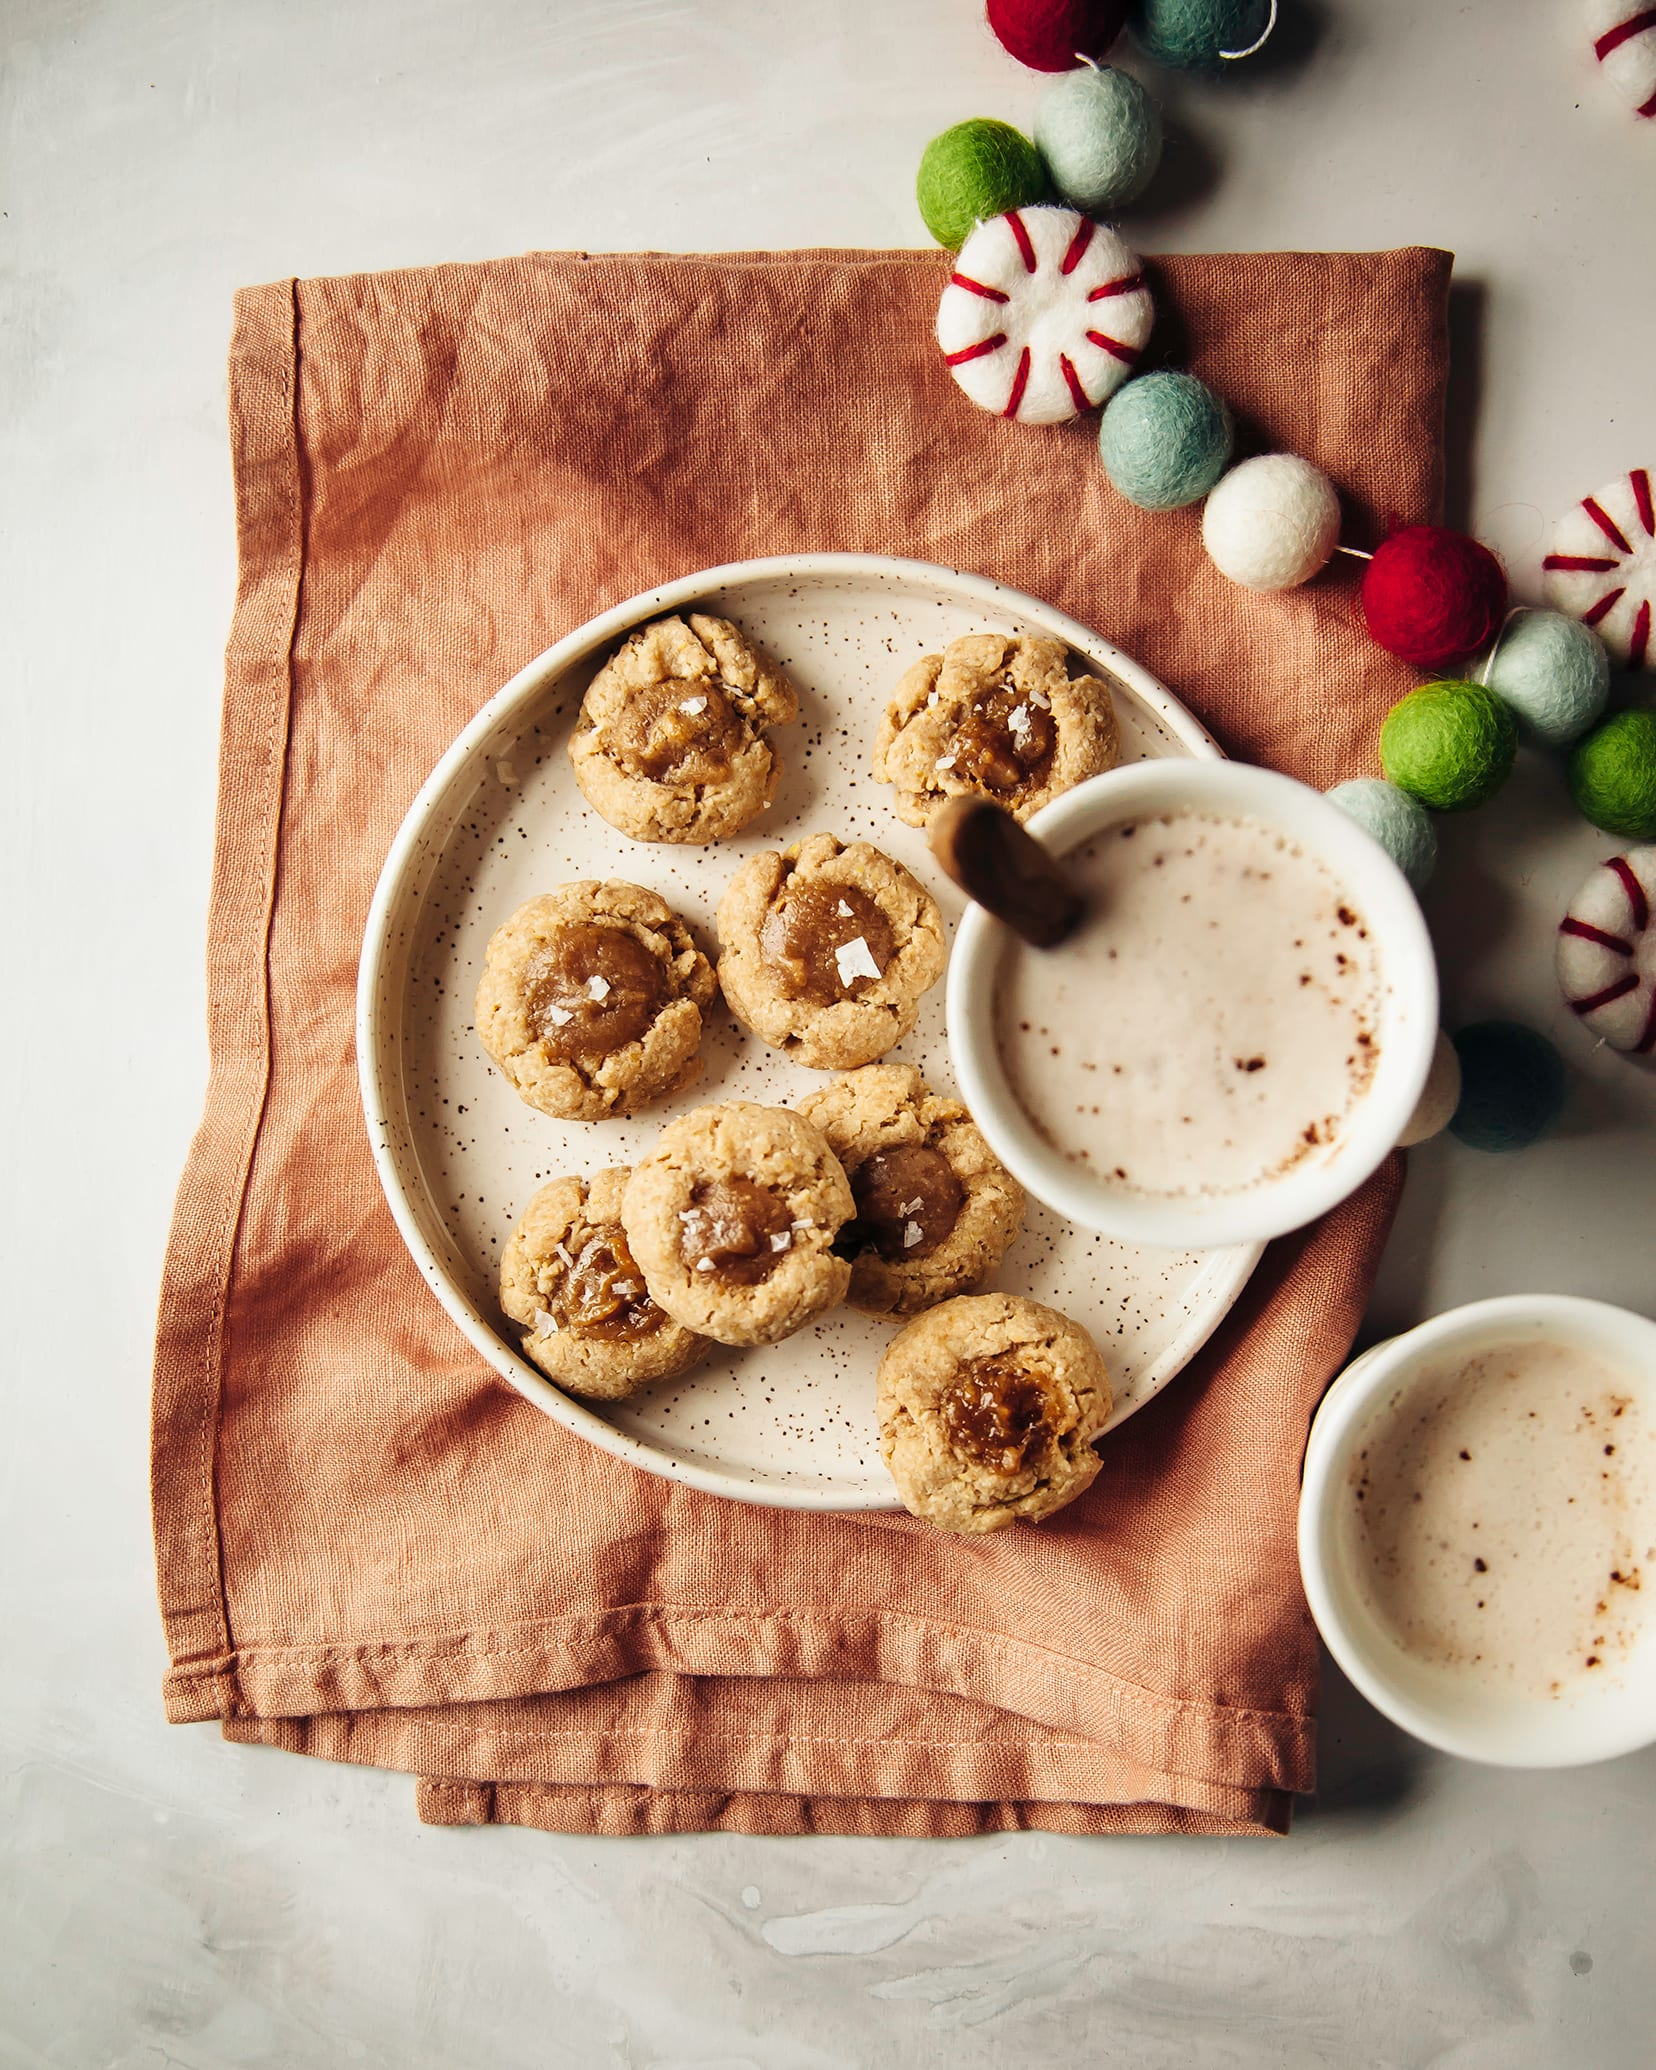 Overhead shot of cardamom thumbprint cookies with peanut butter caramel on a white speckled plate on top of a pink napkin. There are 2 cups of creamy coffee and a festive felt garland on the side.